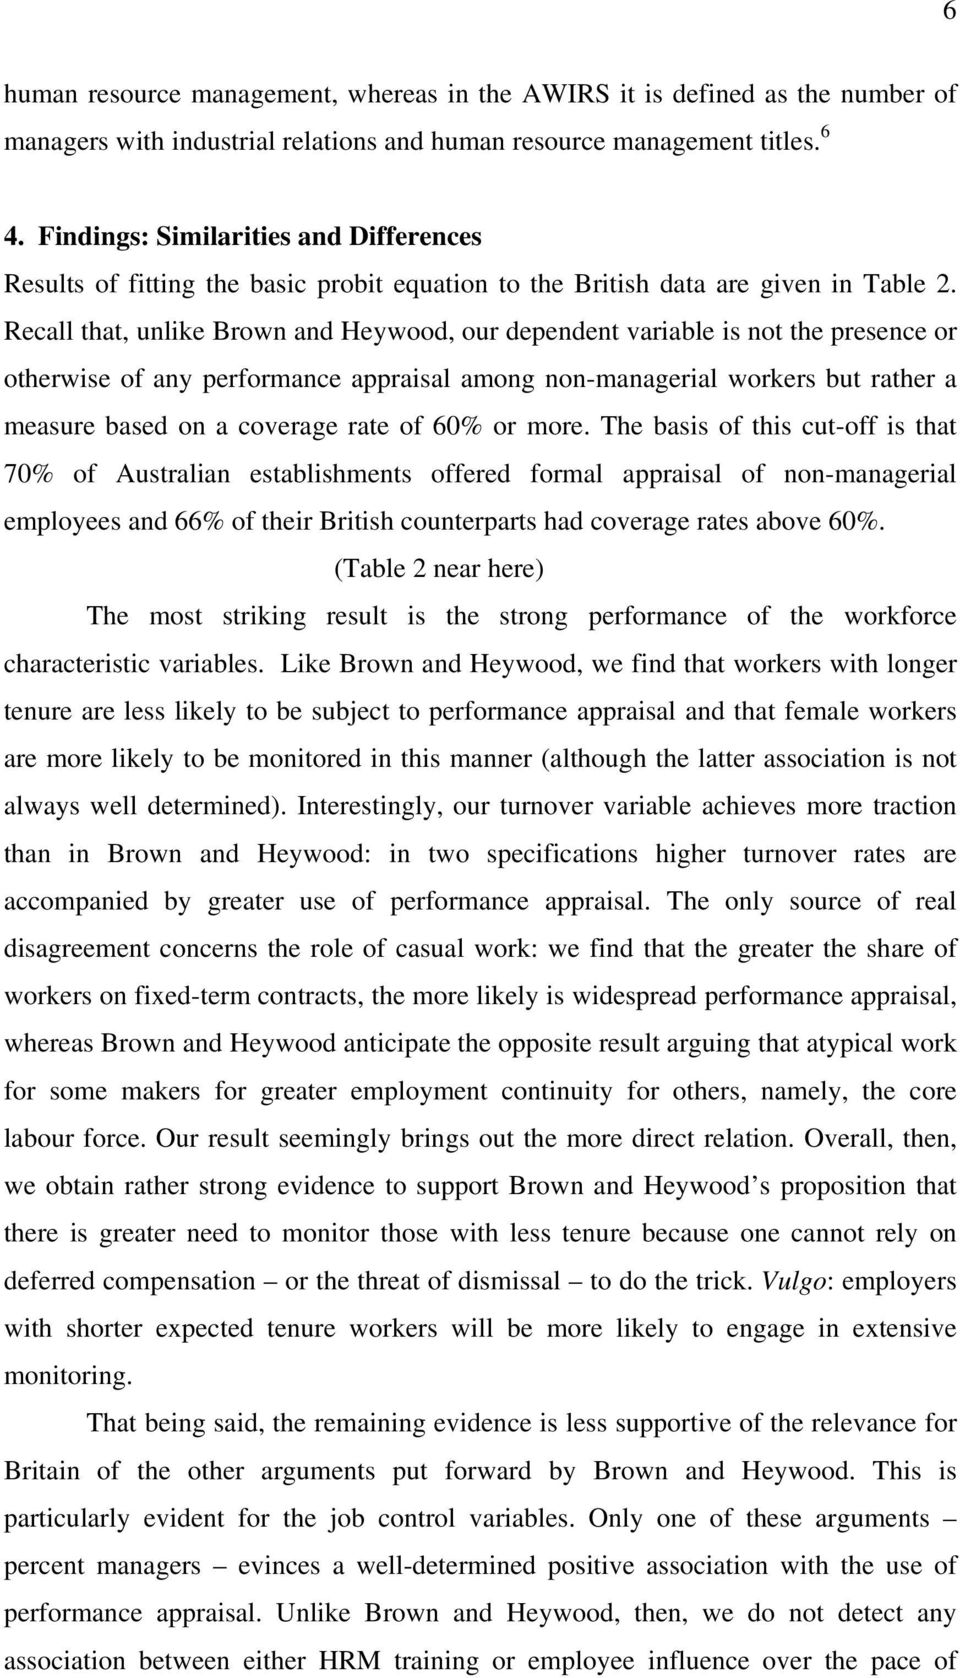 Recall that, unlike Brown and Heywood, our dependent variable is not the presence or otherwise of any performance appraisal among non-managerial workers but rather a measure based on a coverage rate